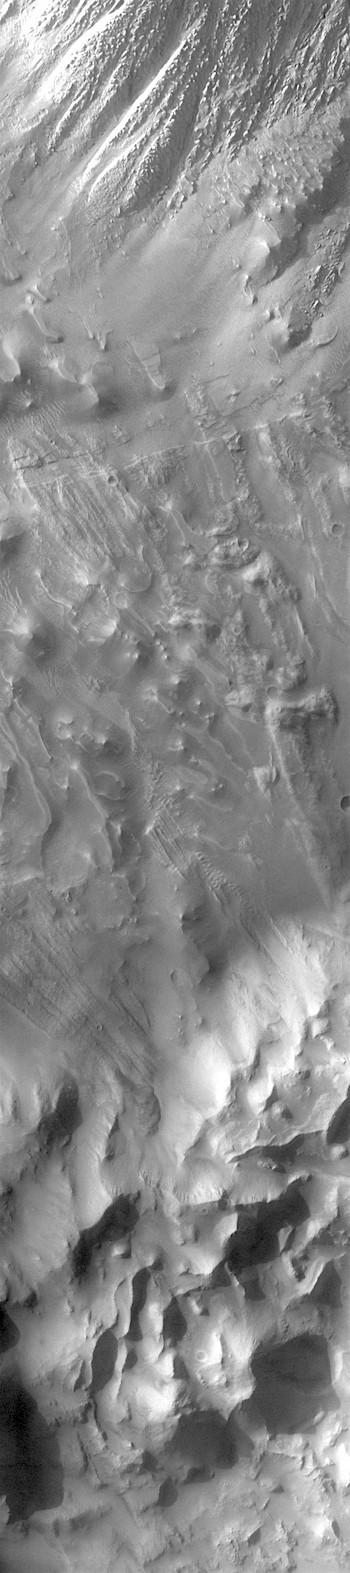 Hummocks on Tithonium Chasma floor (THEMIS_IOTD_20180207)